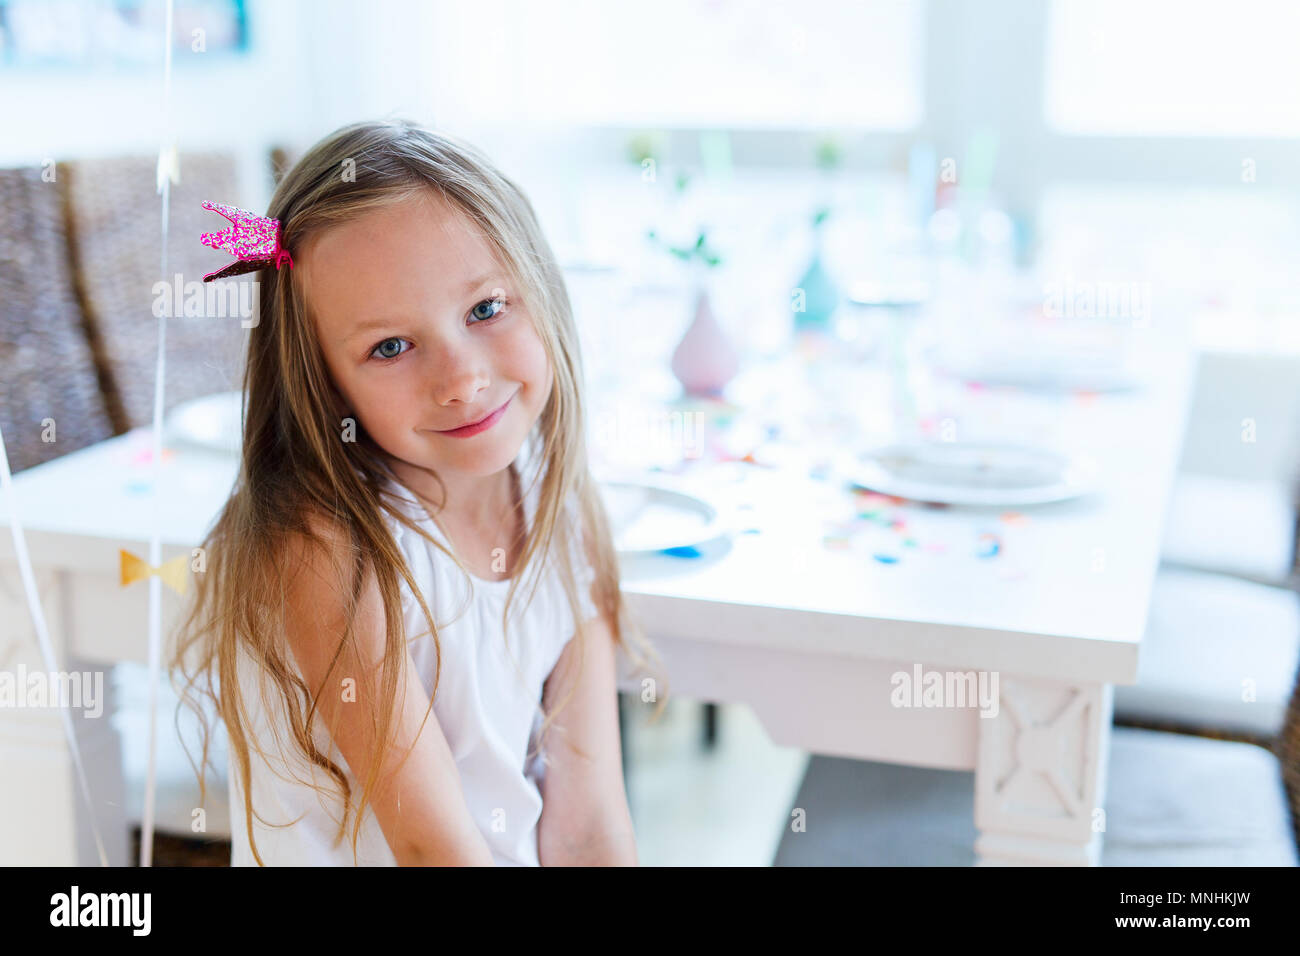 Adorable petite fille princesse avec couronne à kids Birthday party Photo Stock